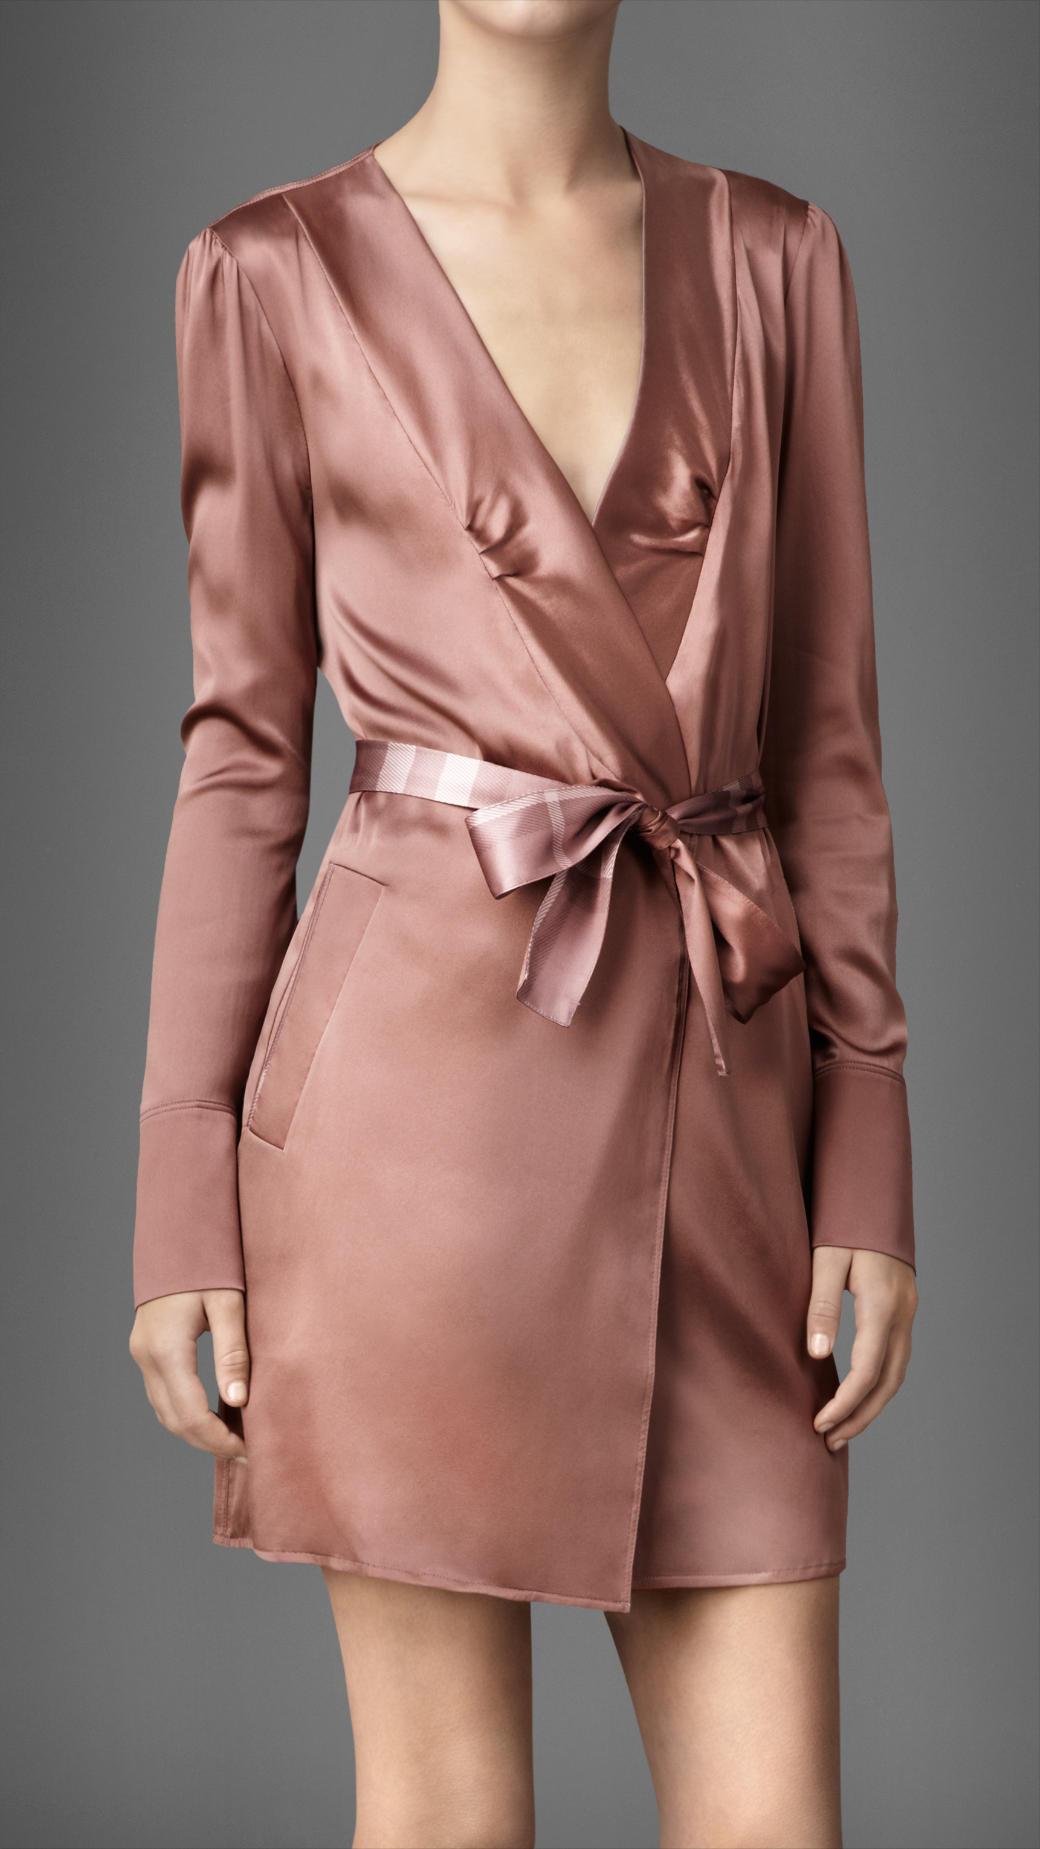 Burberry Stretch Silk Dressing Gown in Pink - Lyst